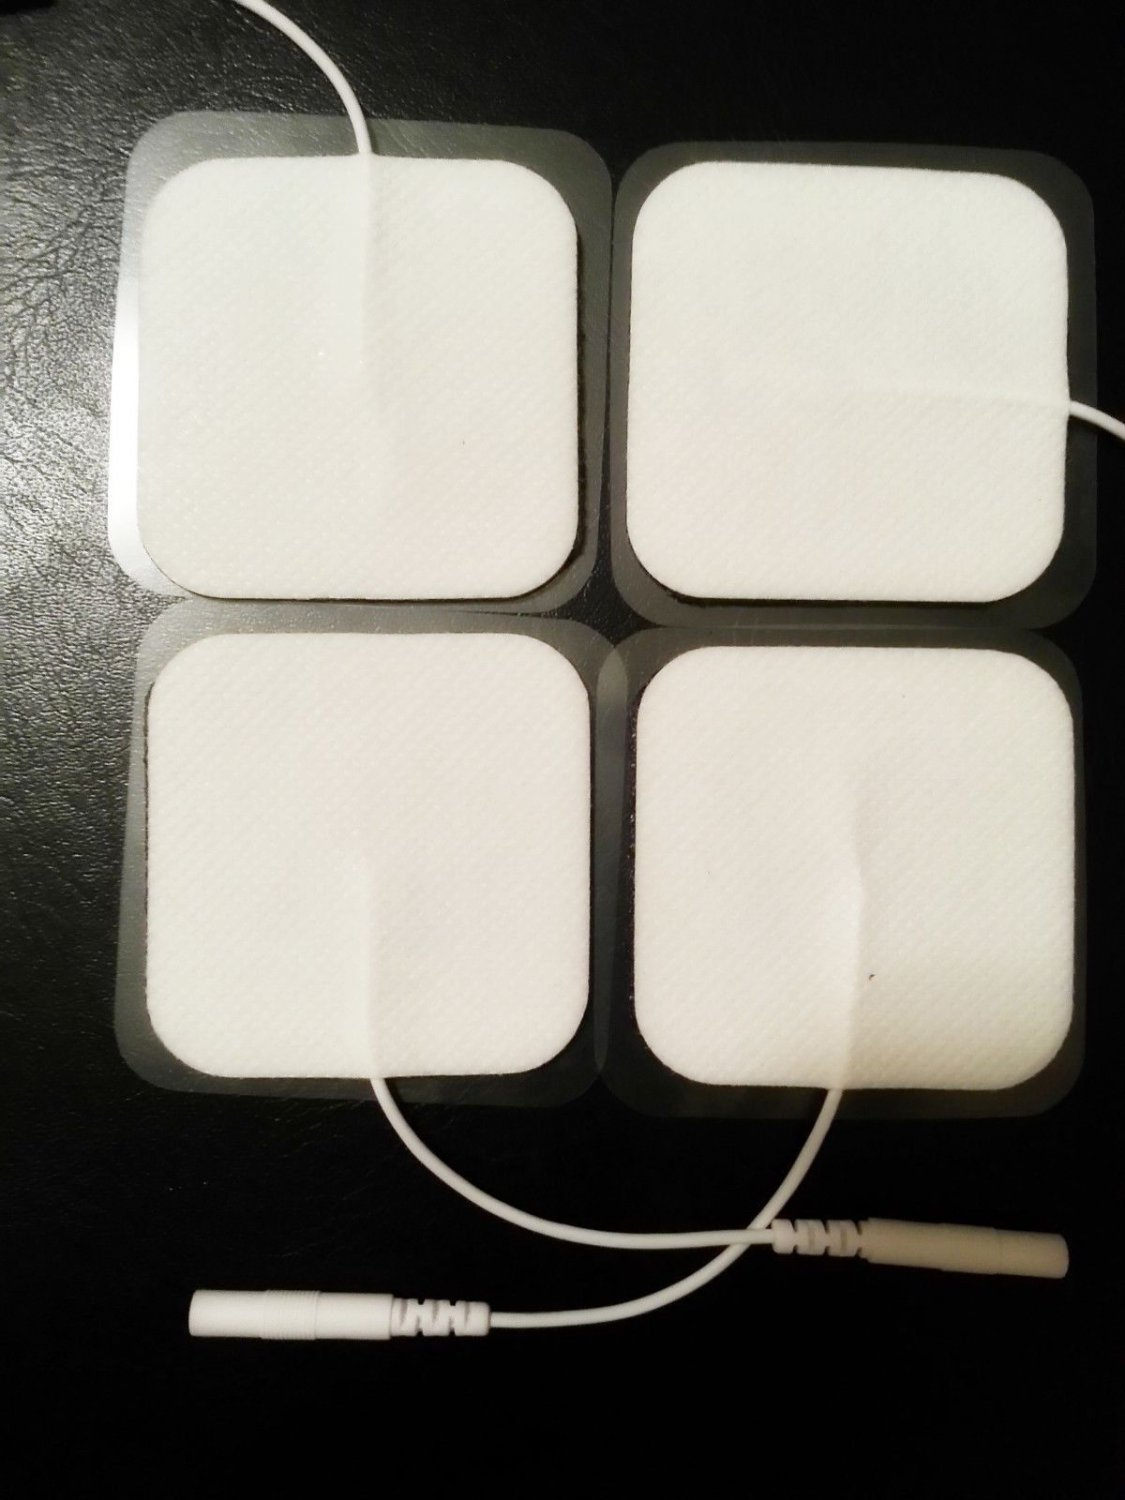 SQUARE SHAPED GEL ELECTRODES(4)SELF ADHESIVE MASSAGE PADS FOR ChoiceMMed System